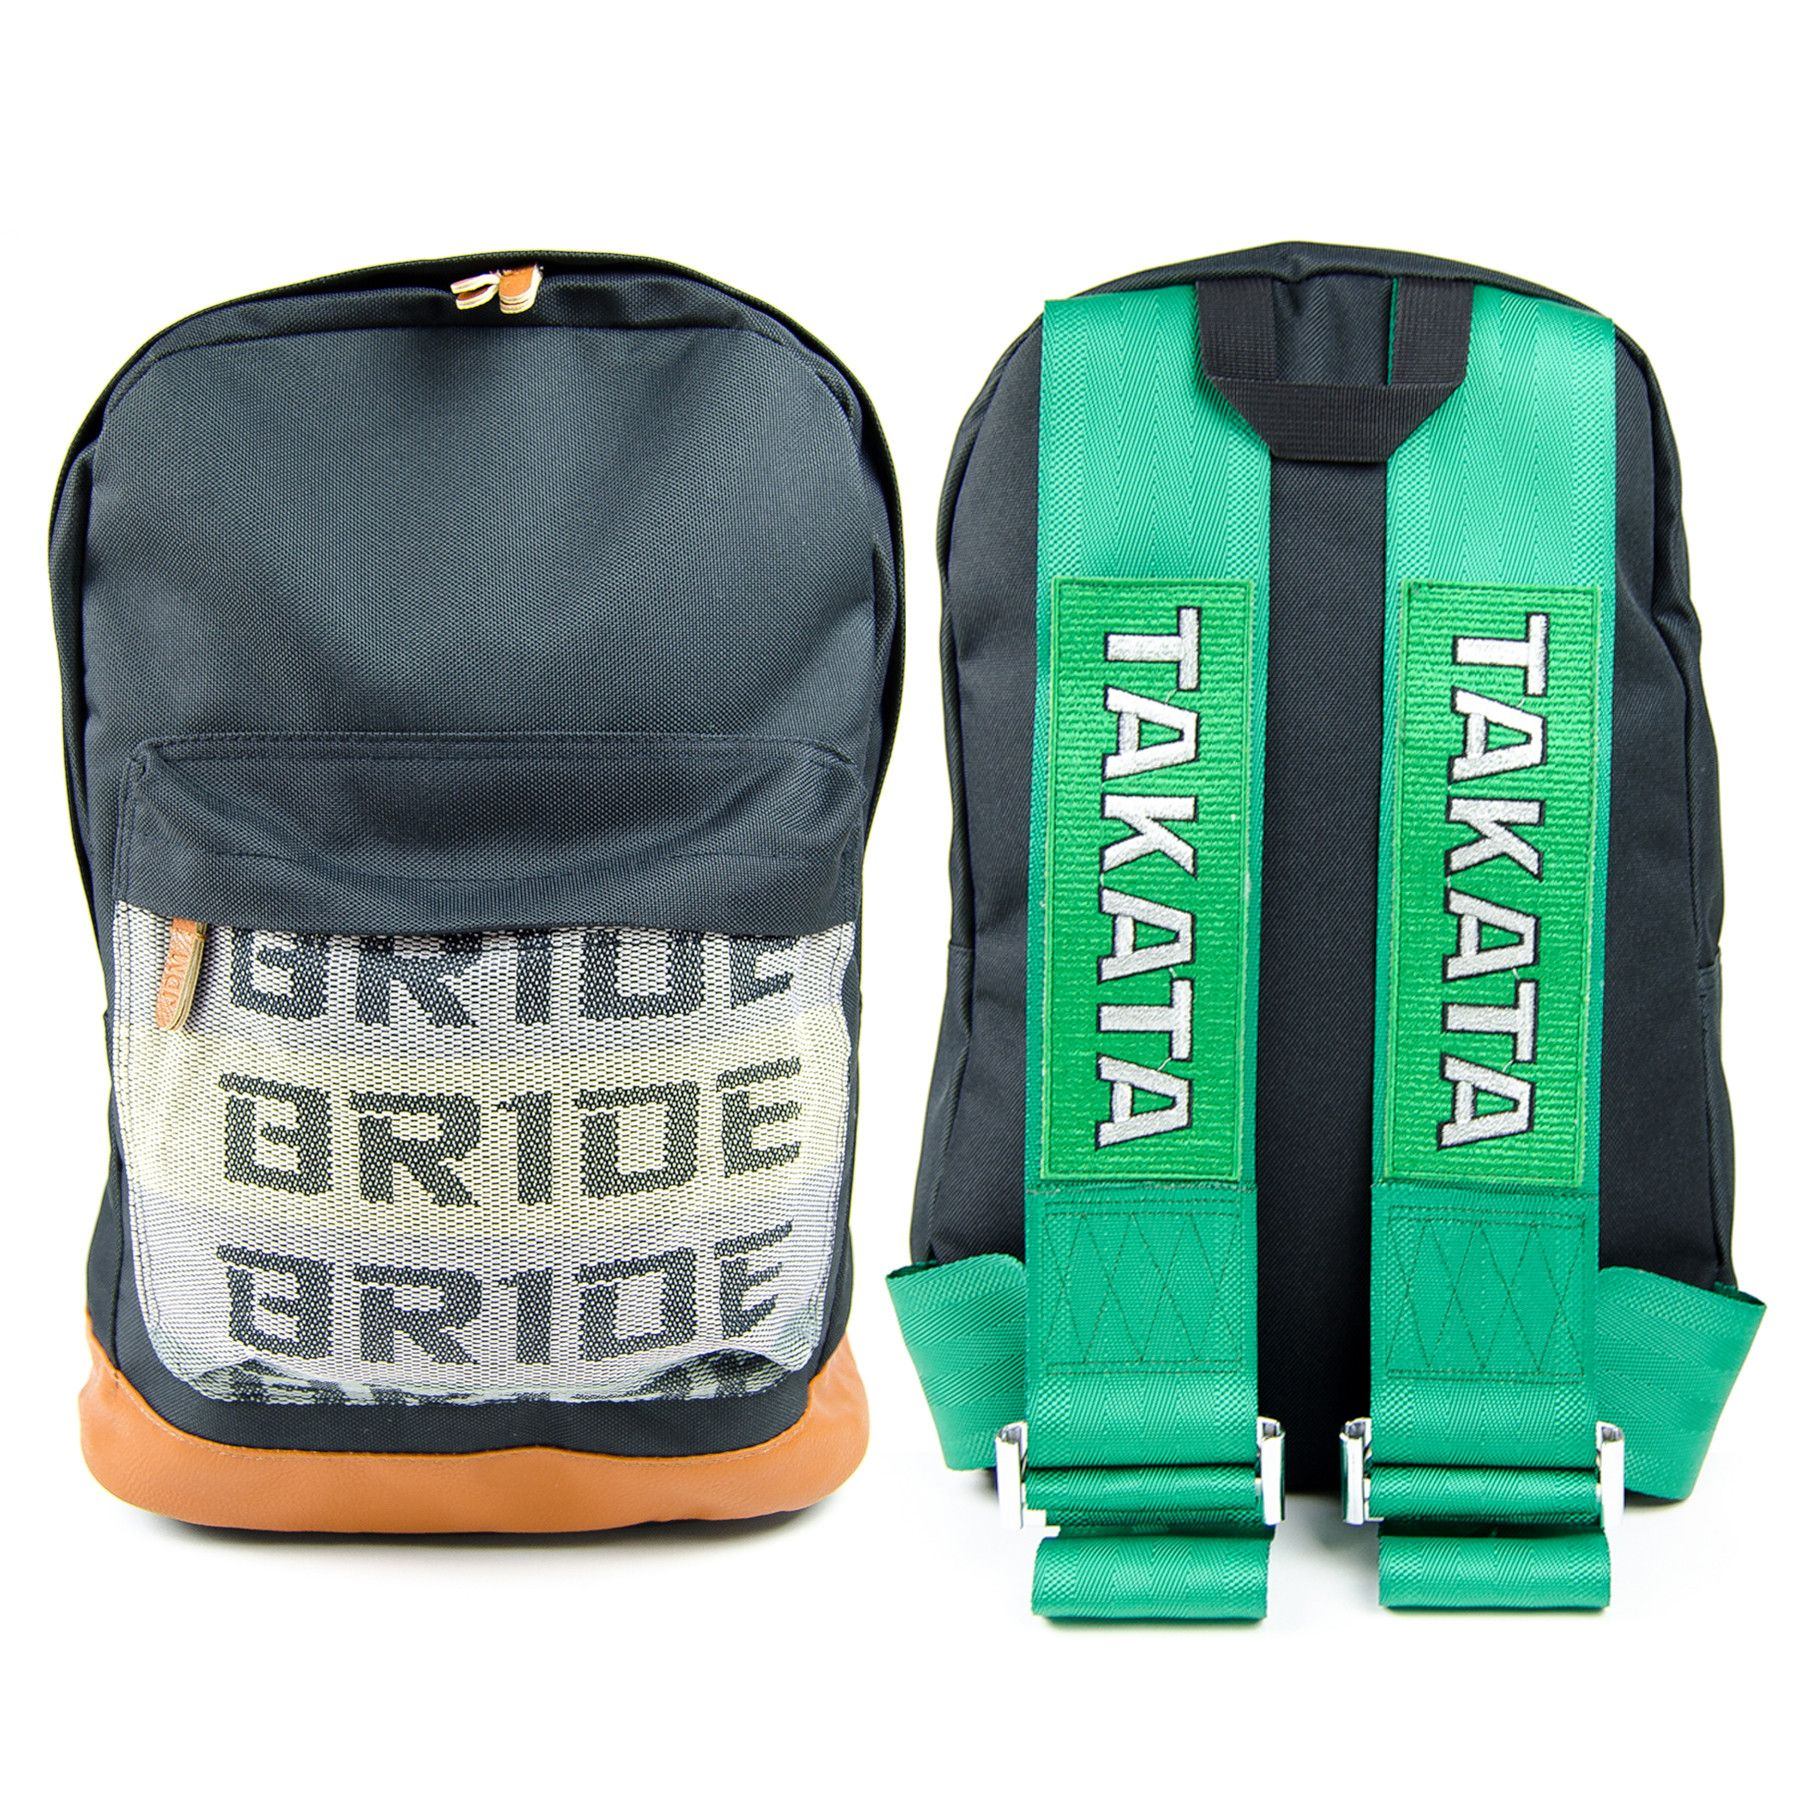 Bride X Takata Backpack Racing Harness Original Backpack Car Parts And Accessories